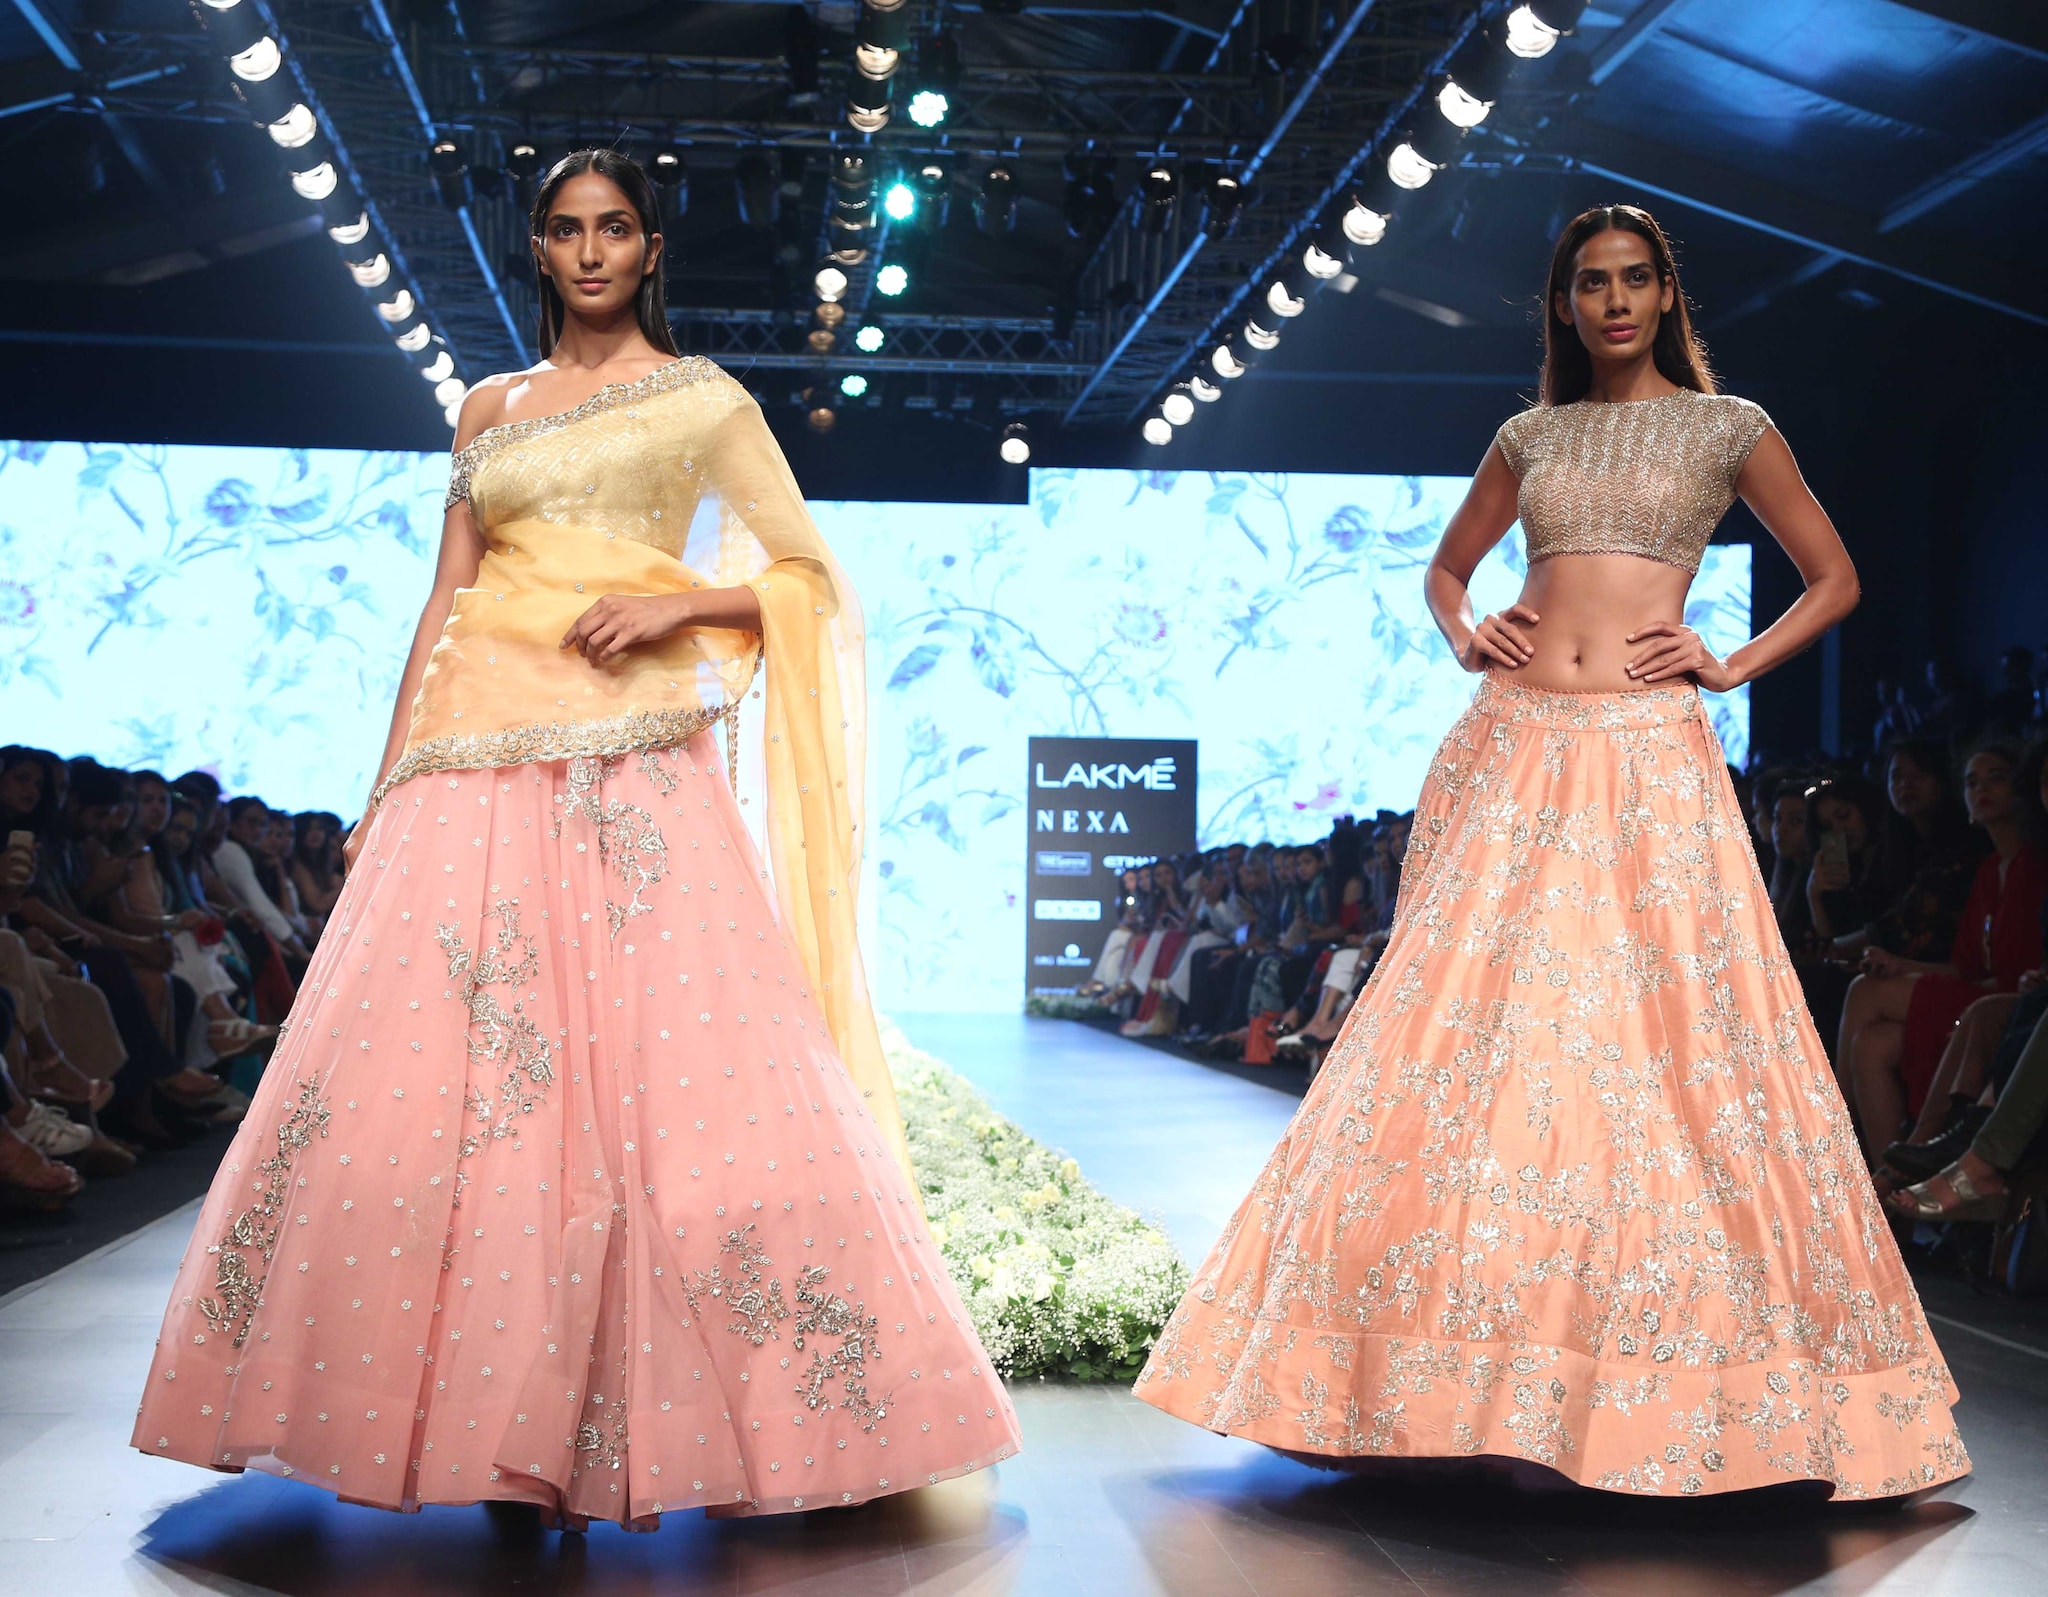 LFW 2018: Don't Know Much About Fashion, Stylists Make Me Look Good